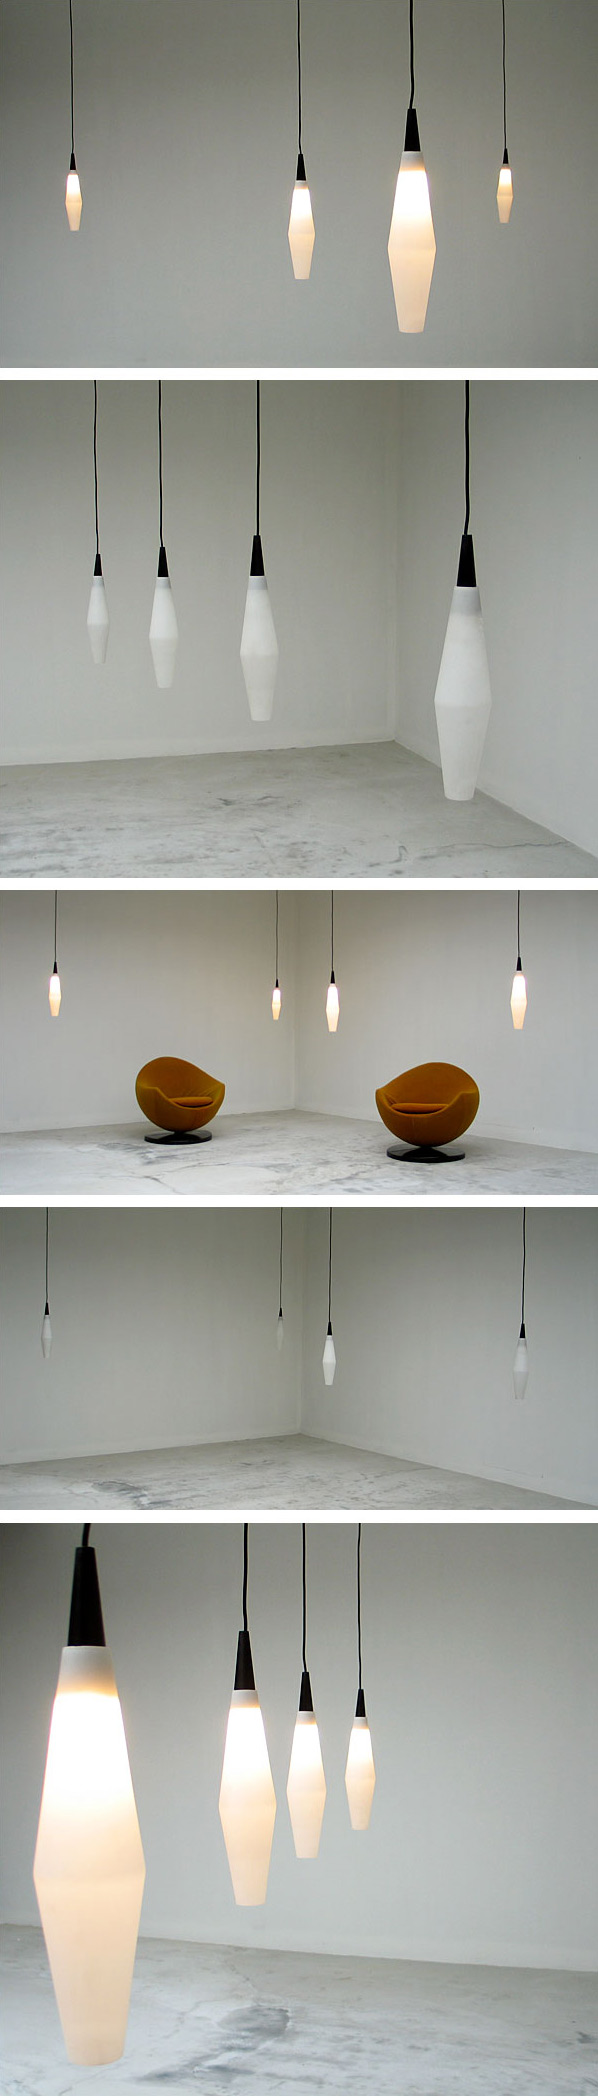 4 fifties Pendant lights Svend Aage Holm Sorensen Large